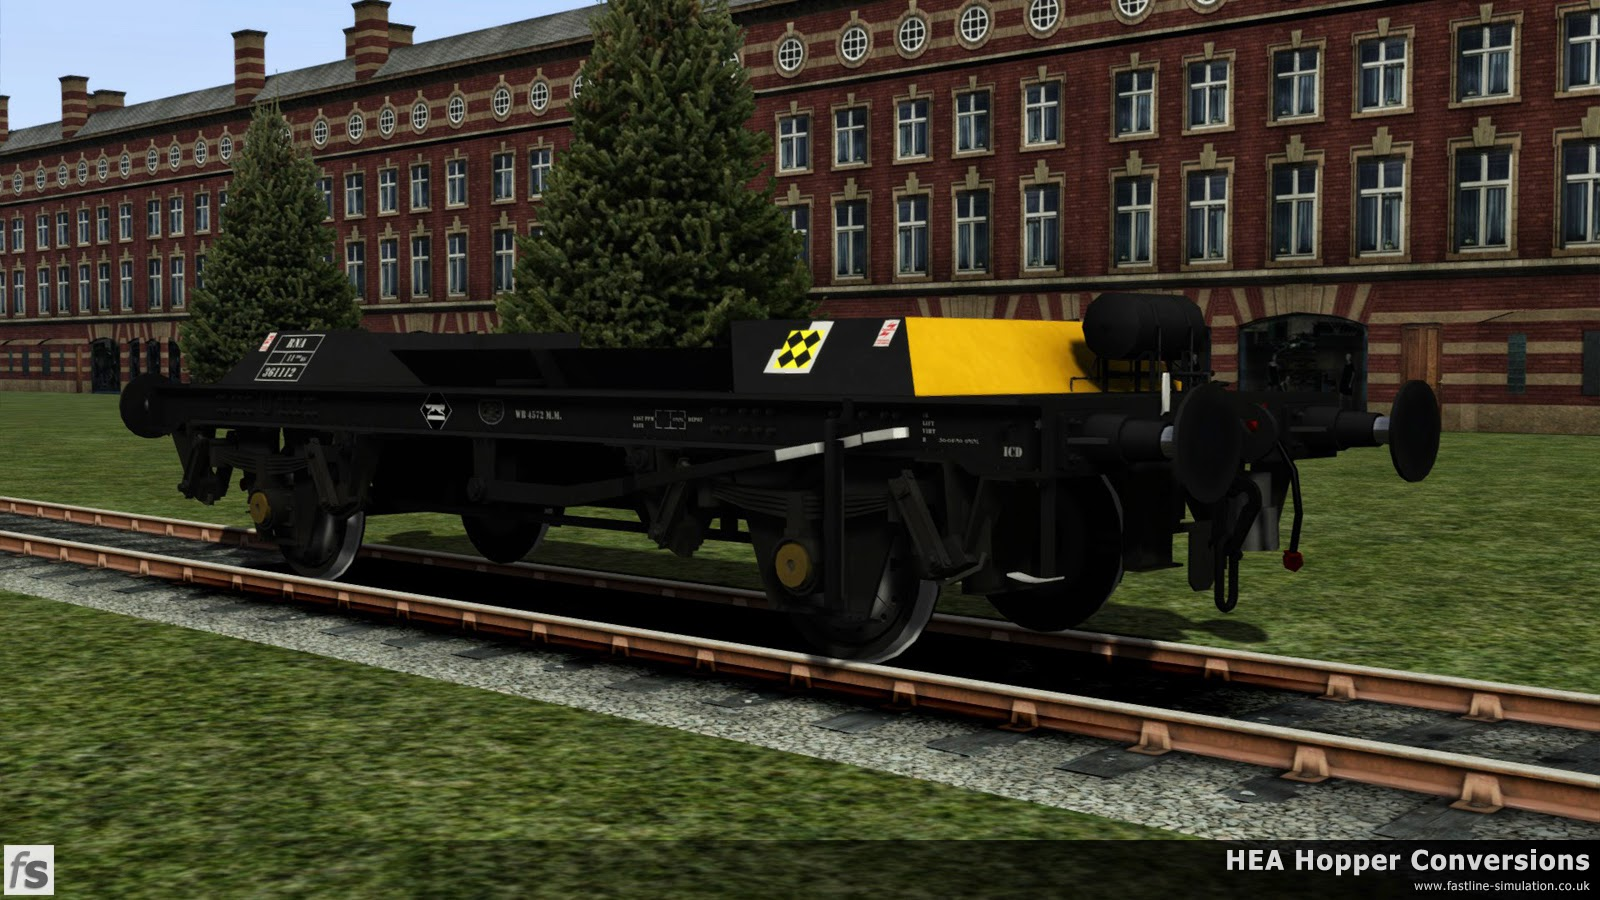 Fastline Simulation - HEA Conversions: RNA barrier wagon with the hopper body removed in Railfreight Coal livery from the air tank end showing the uncluttered side without pipe runs.